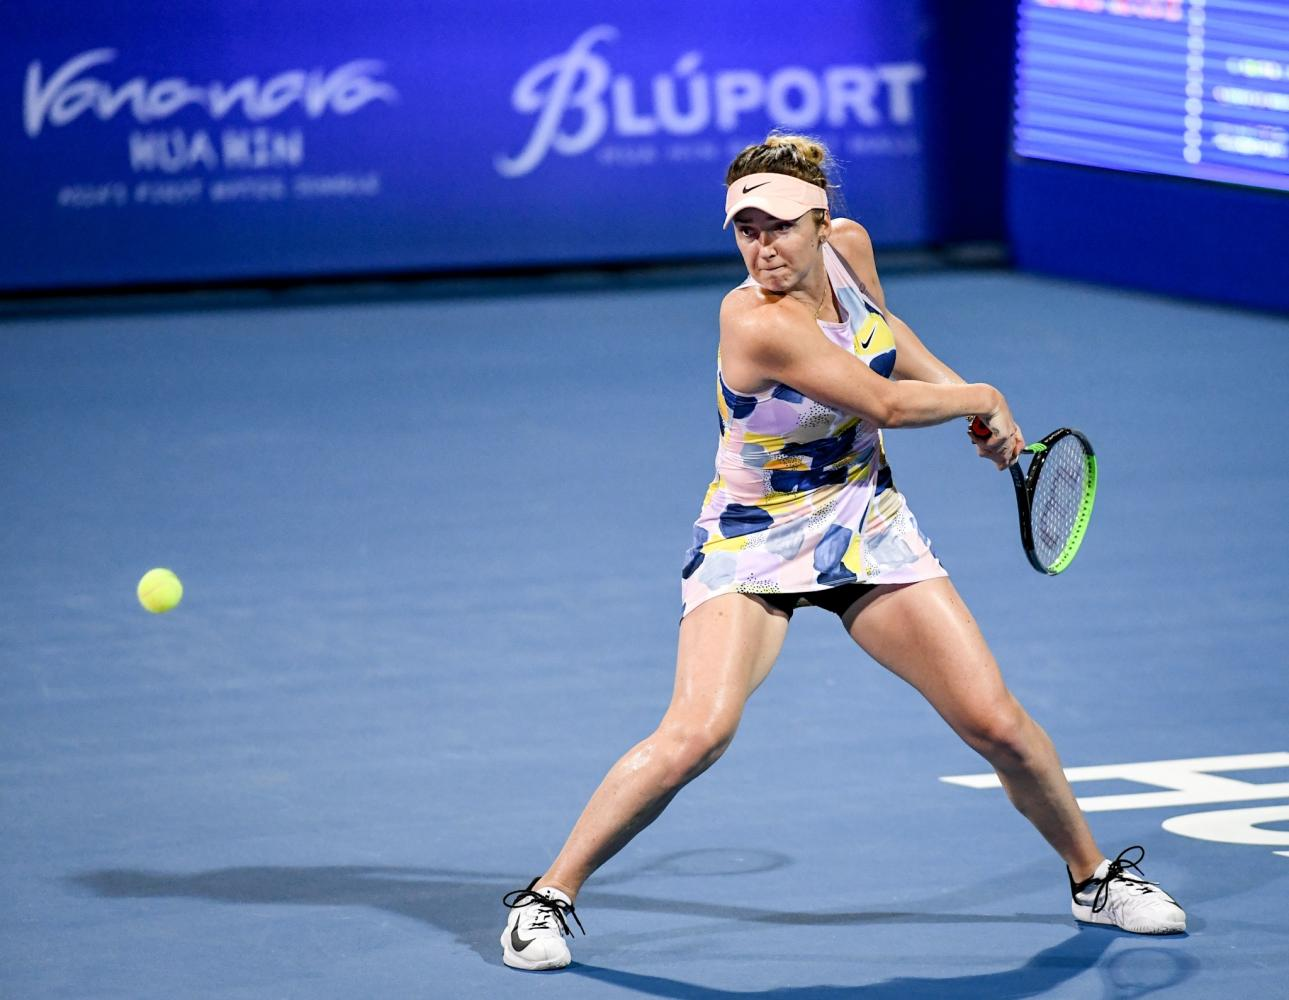 Svitolina suffers quarterfinal exit in Thailand